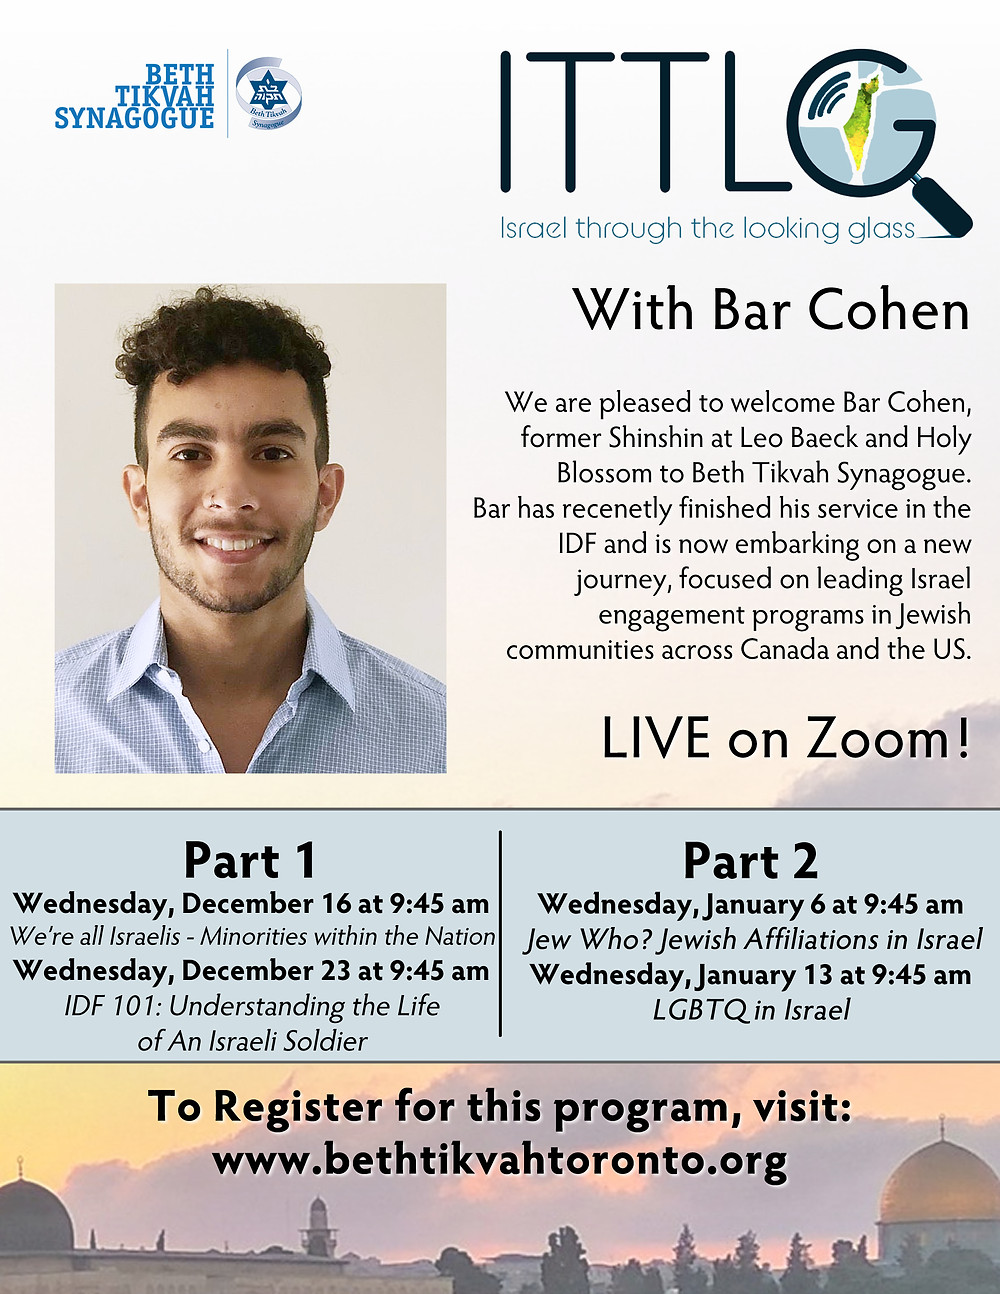 Israel Through the Looking Glass and Bar Cohen flyer